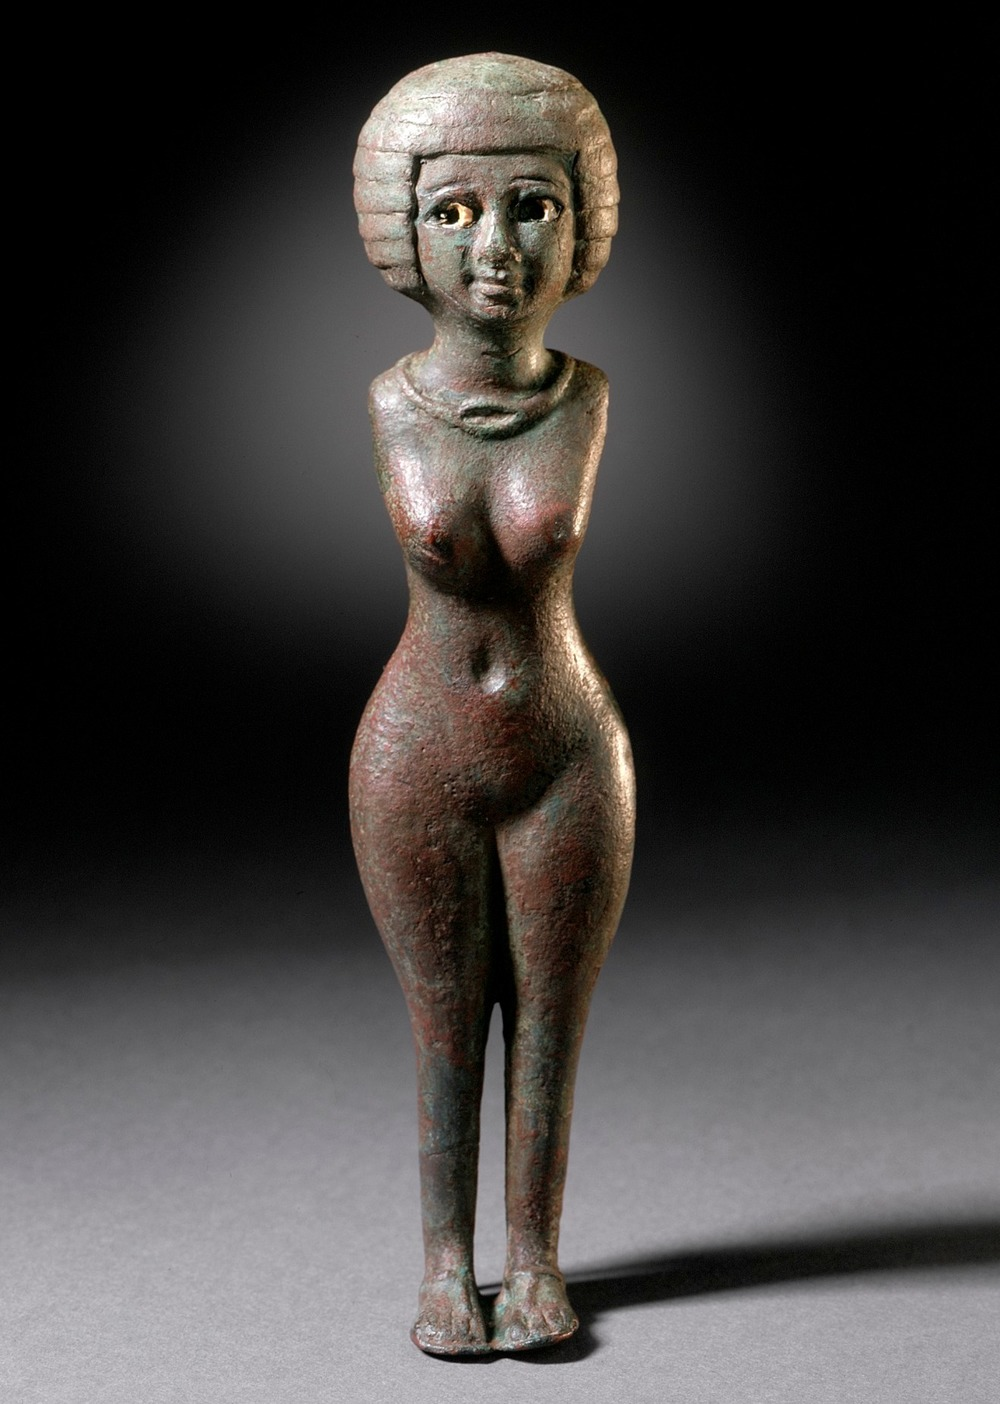 Nubian_Female_Figure_LACMA_51.26.1 1B - Los Angeles County Museum of Art.png